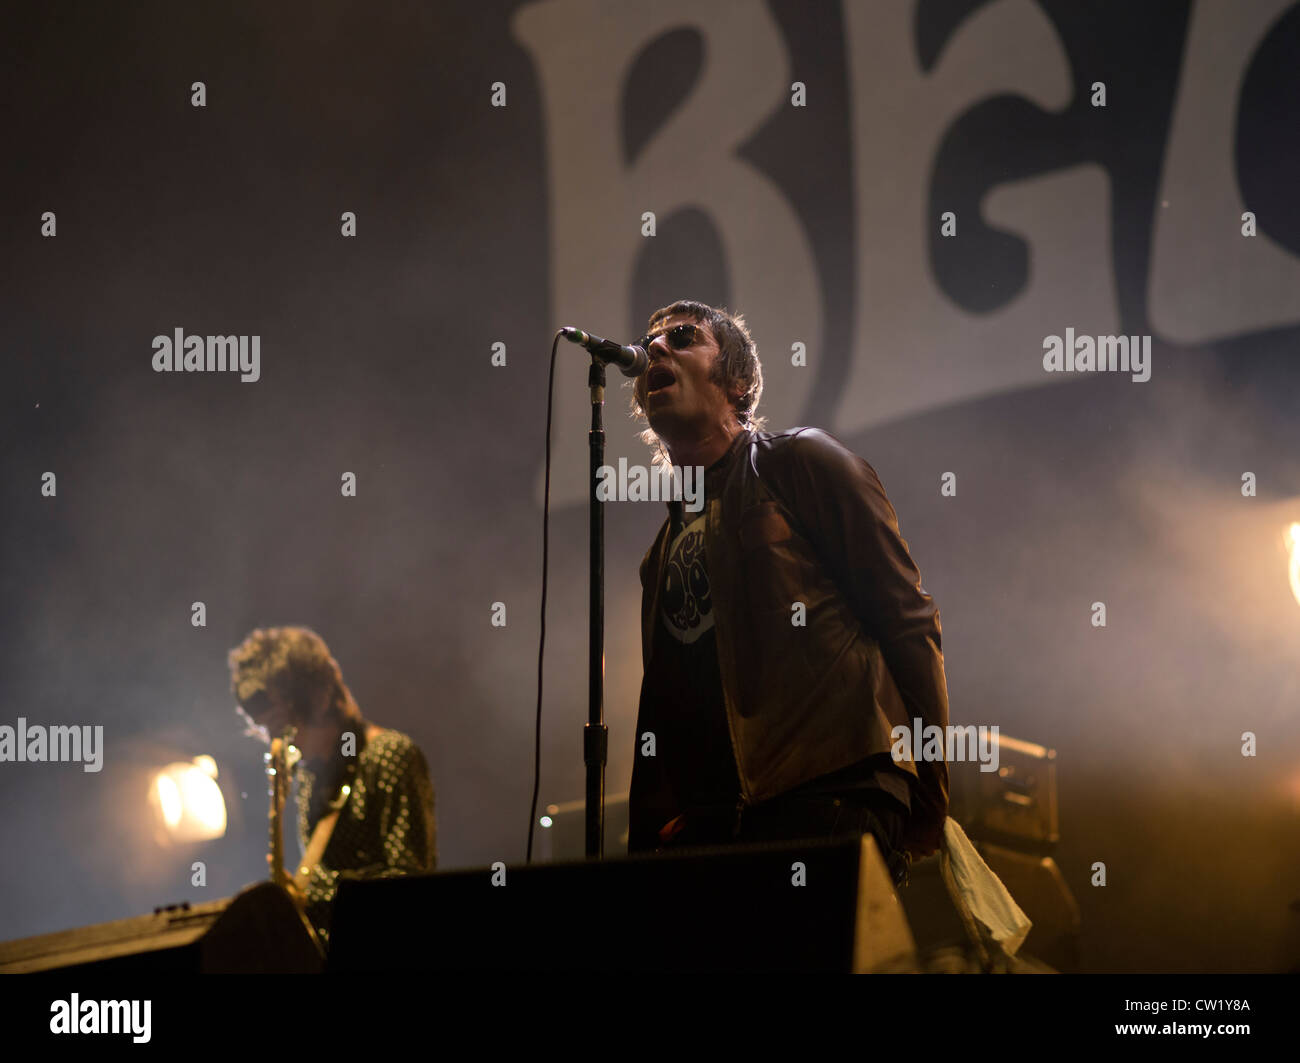 Liam Gallagher with Beady Eye formerly of Oasis - Stock Image